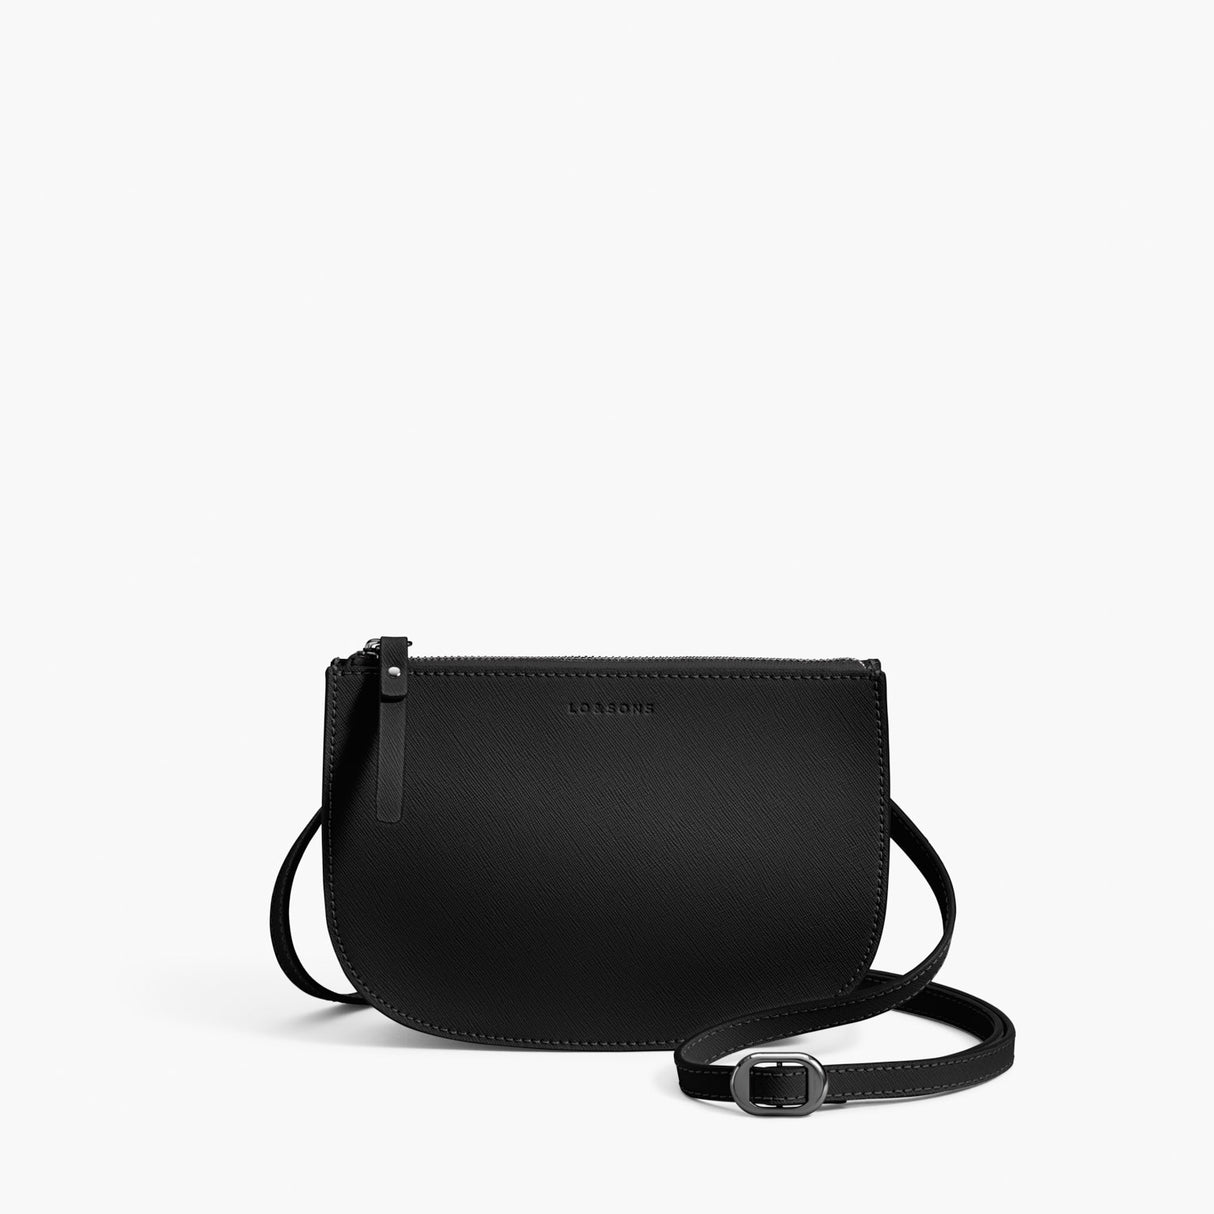 Front Crossbody - Waverley 2 - Saffiano Leather - Black / Gunmetal / Grey - Crossbody Bag - Lo & Sons